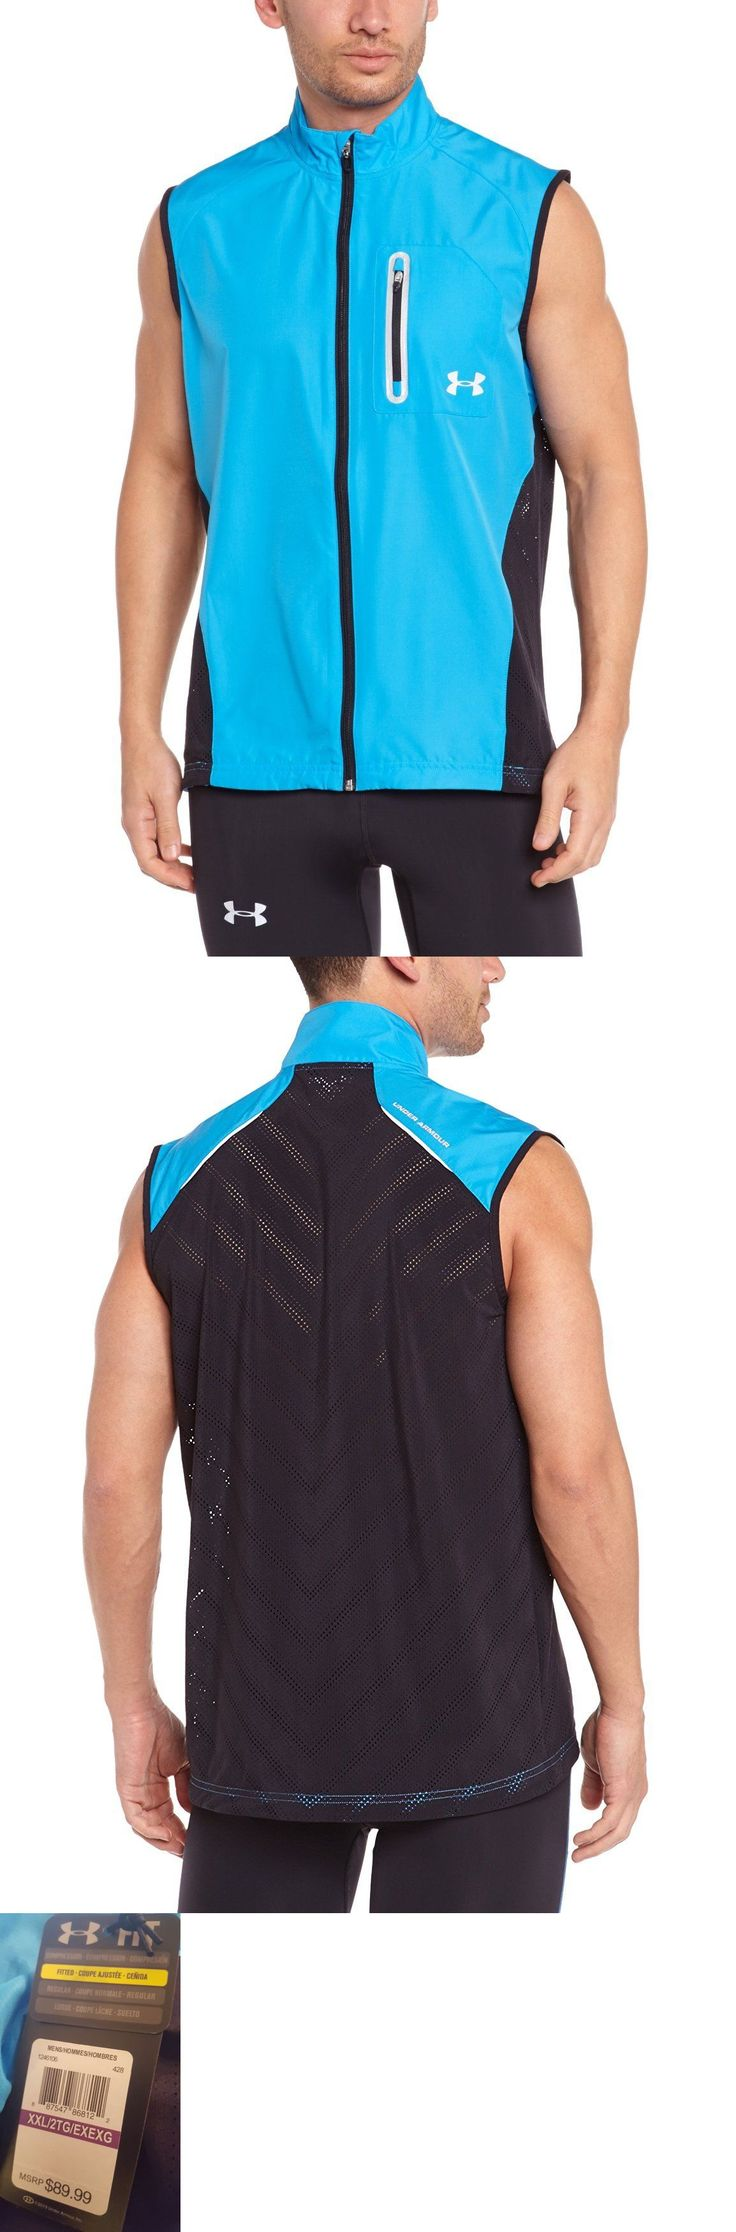 Jackets and Vests 59353: Nwt $90 Men S Under Armour Armourvent Run Running Vest Fitted Blue 1246106 - 2Xl -> BUY IT NOW ONLY: $38.99 on eBay!